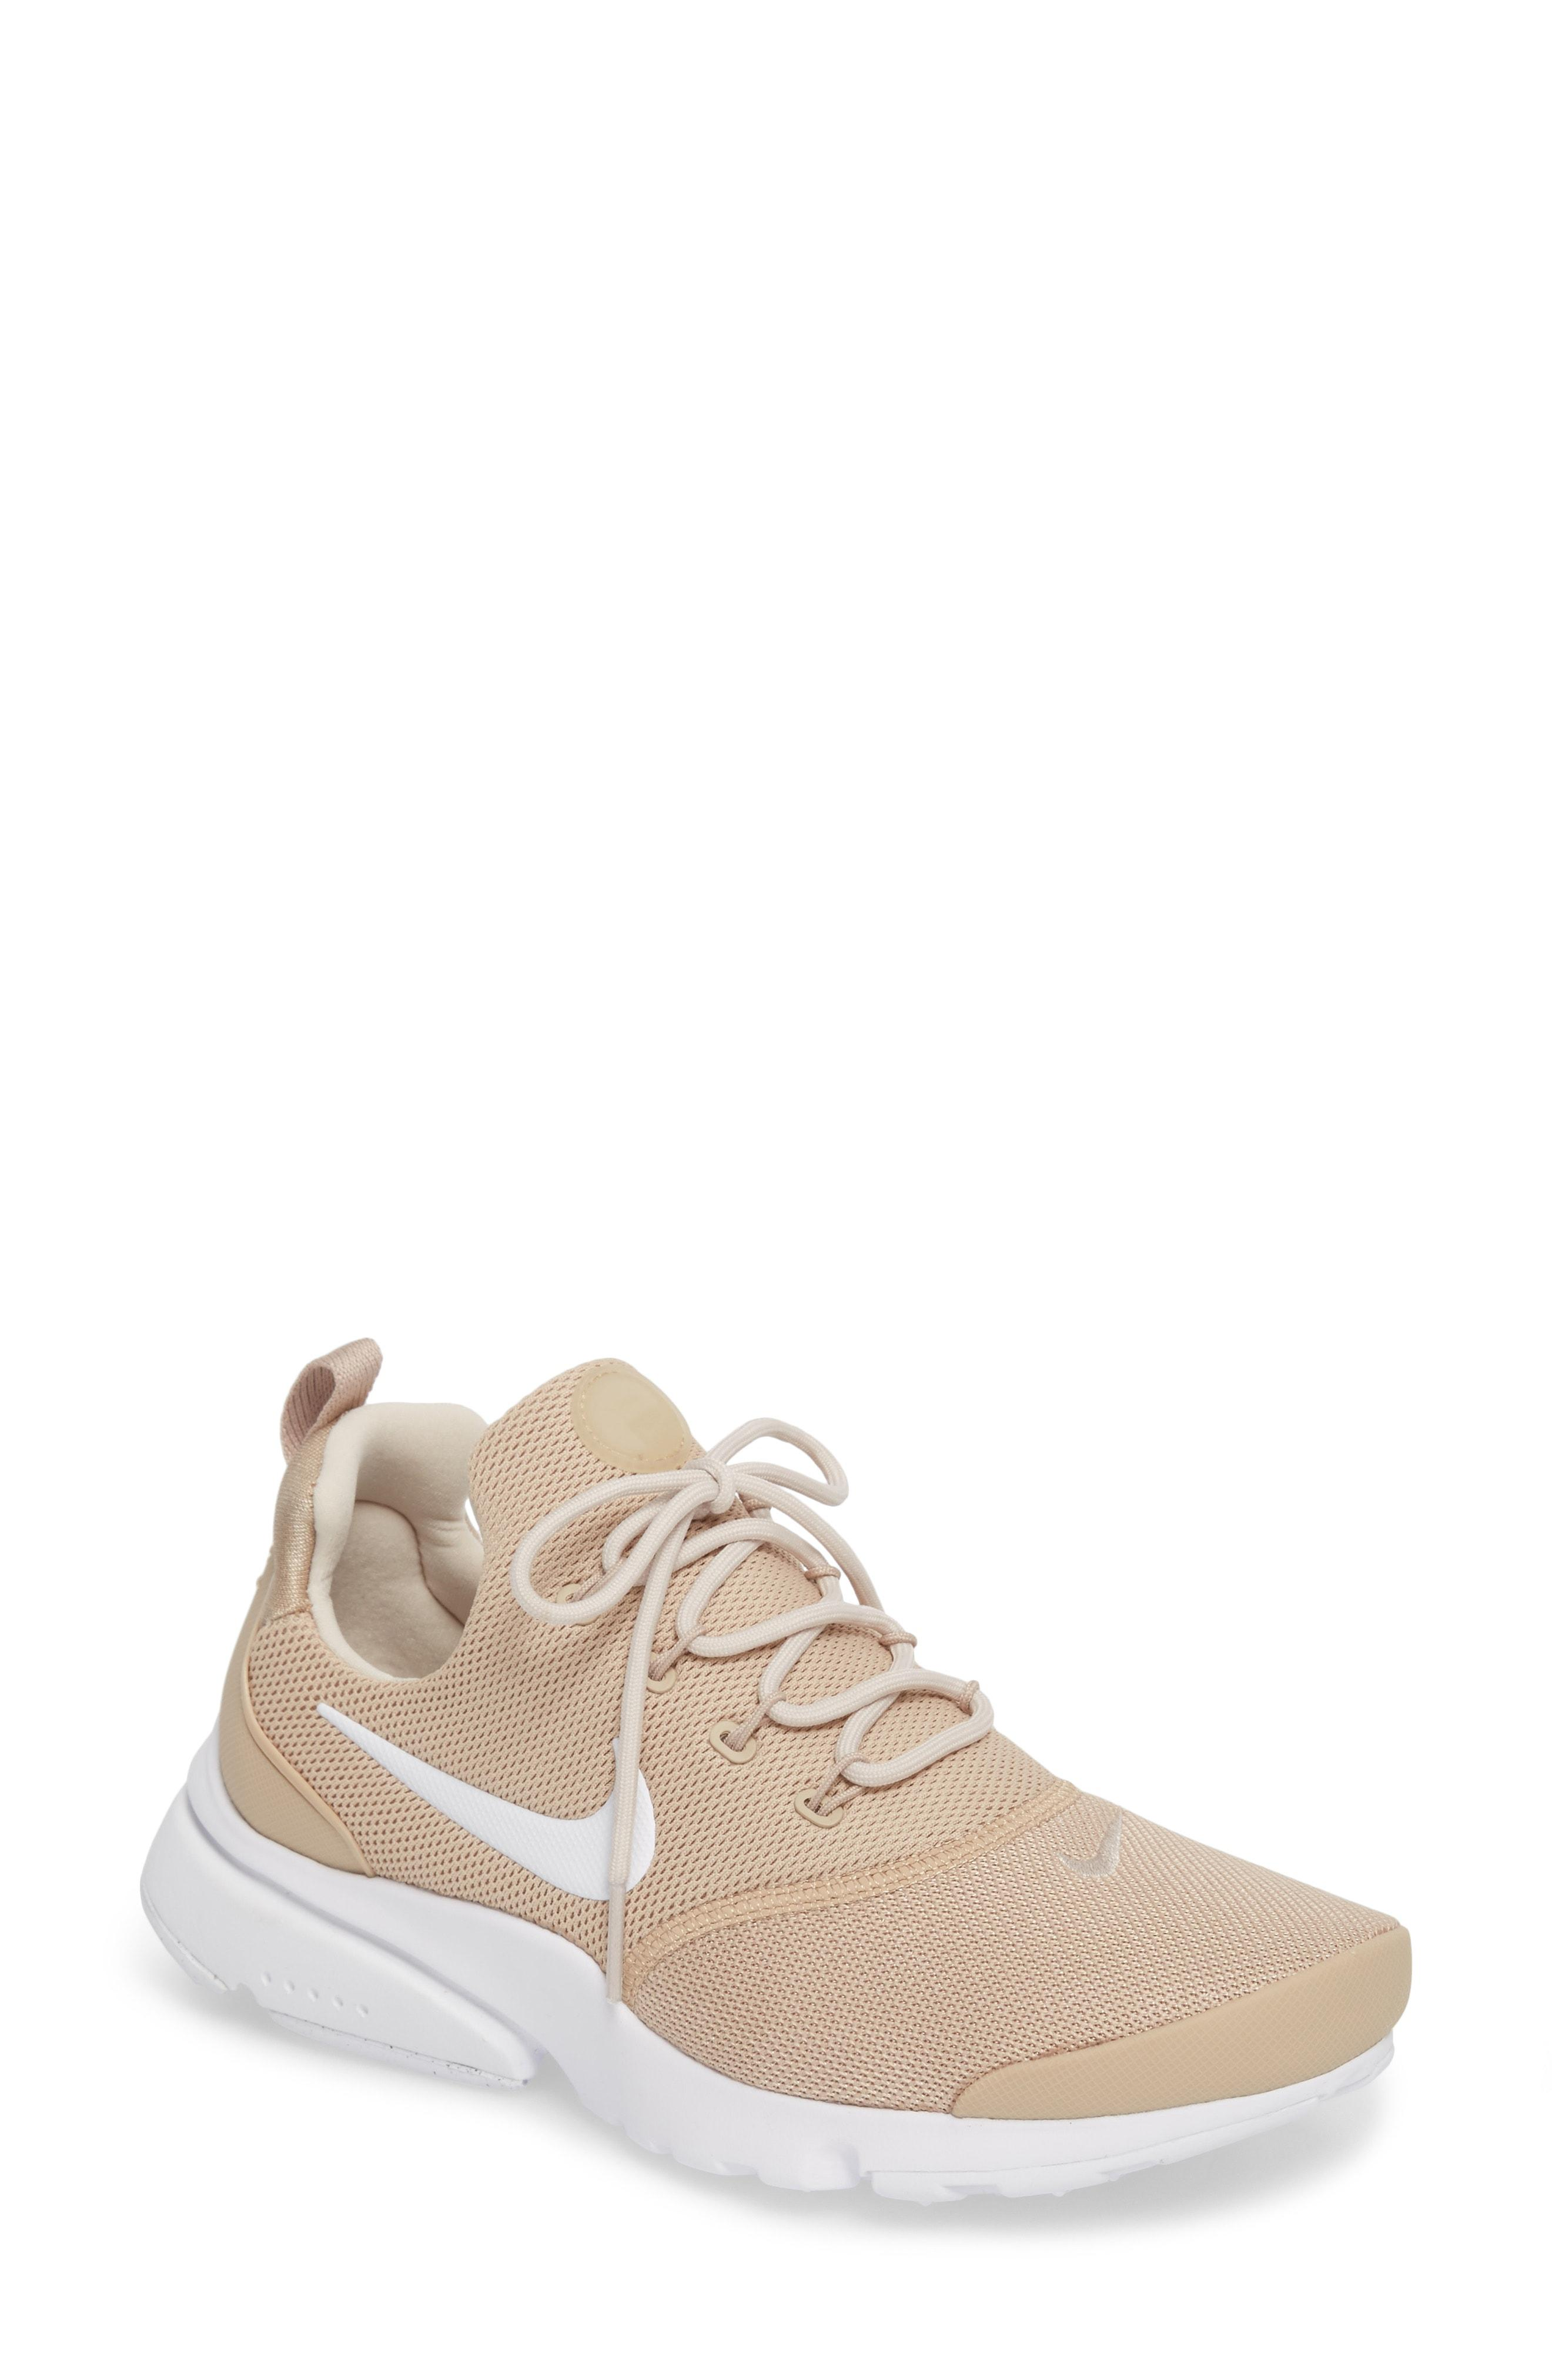 5b0b84173a3f Nike Women s Presto Fly Running Sneakers From Finish Line In Sand Desert  Sand-Sail